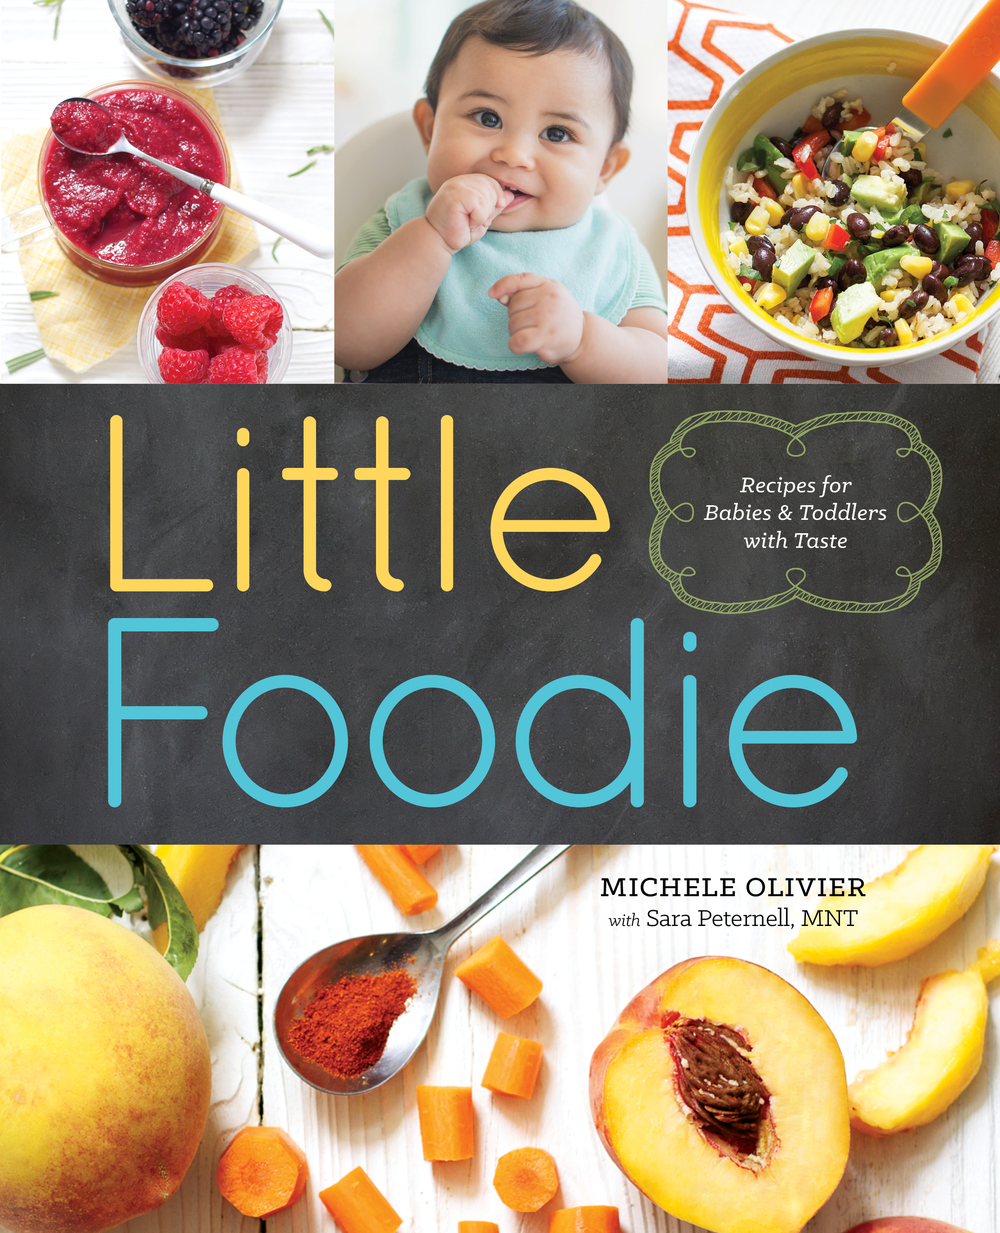 Little foodie book pre sale now baby foode adventurous recipes little foodie book pre sale now baby foode adventurous recipes for babies toddlers forumfinder Images